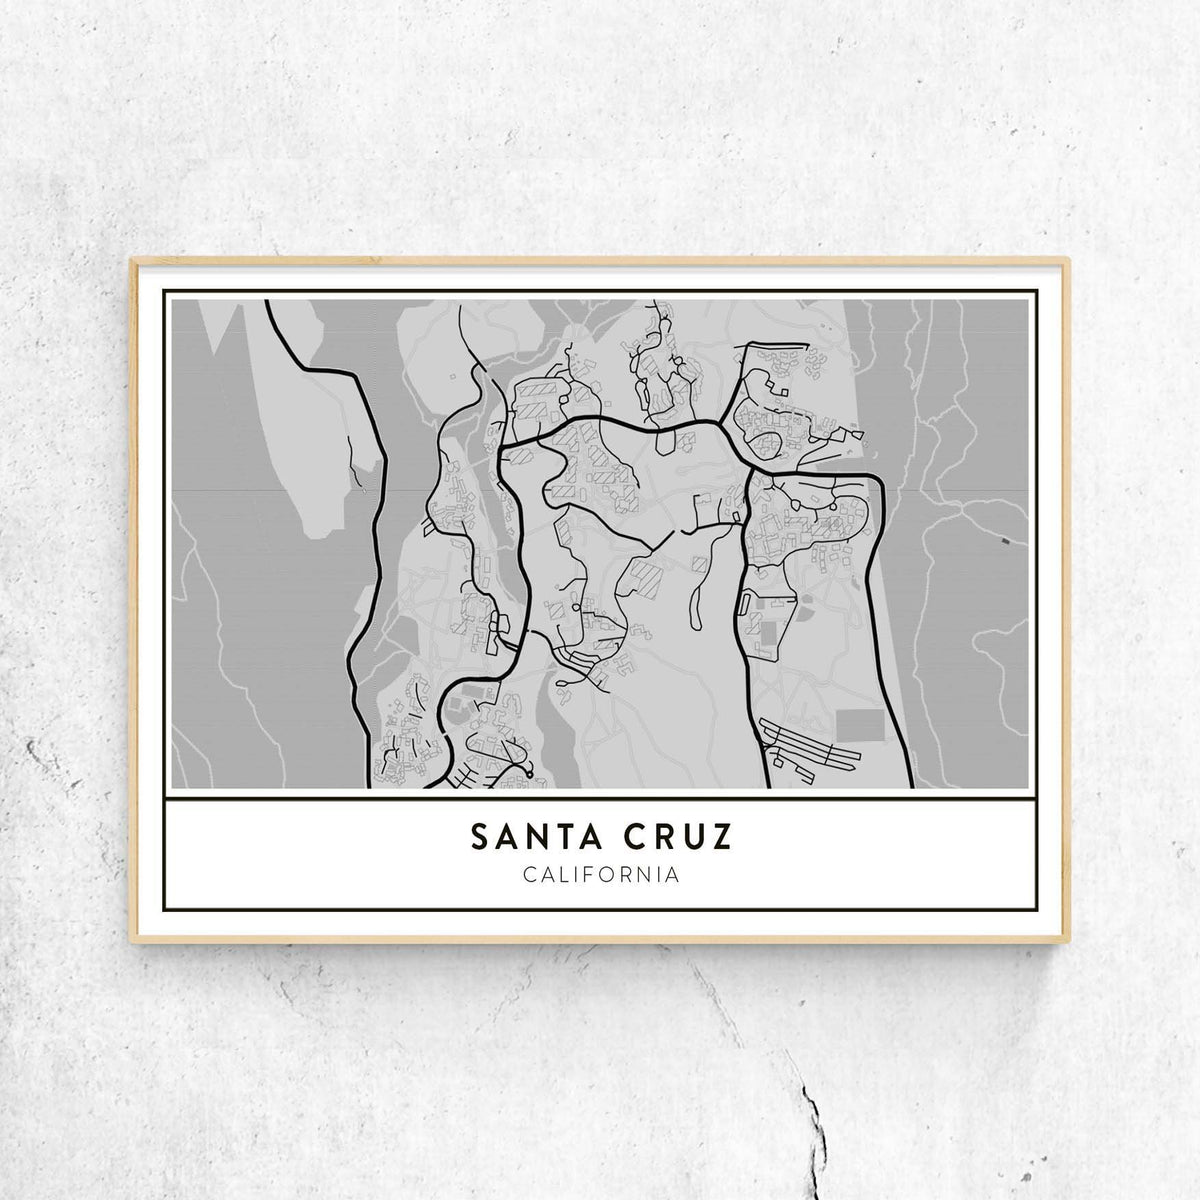 Santa Cruz California Map.University Of California Santa Cruz Campus Map Art Print Landscape